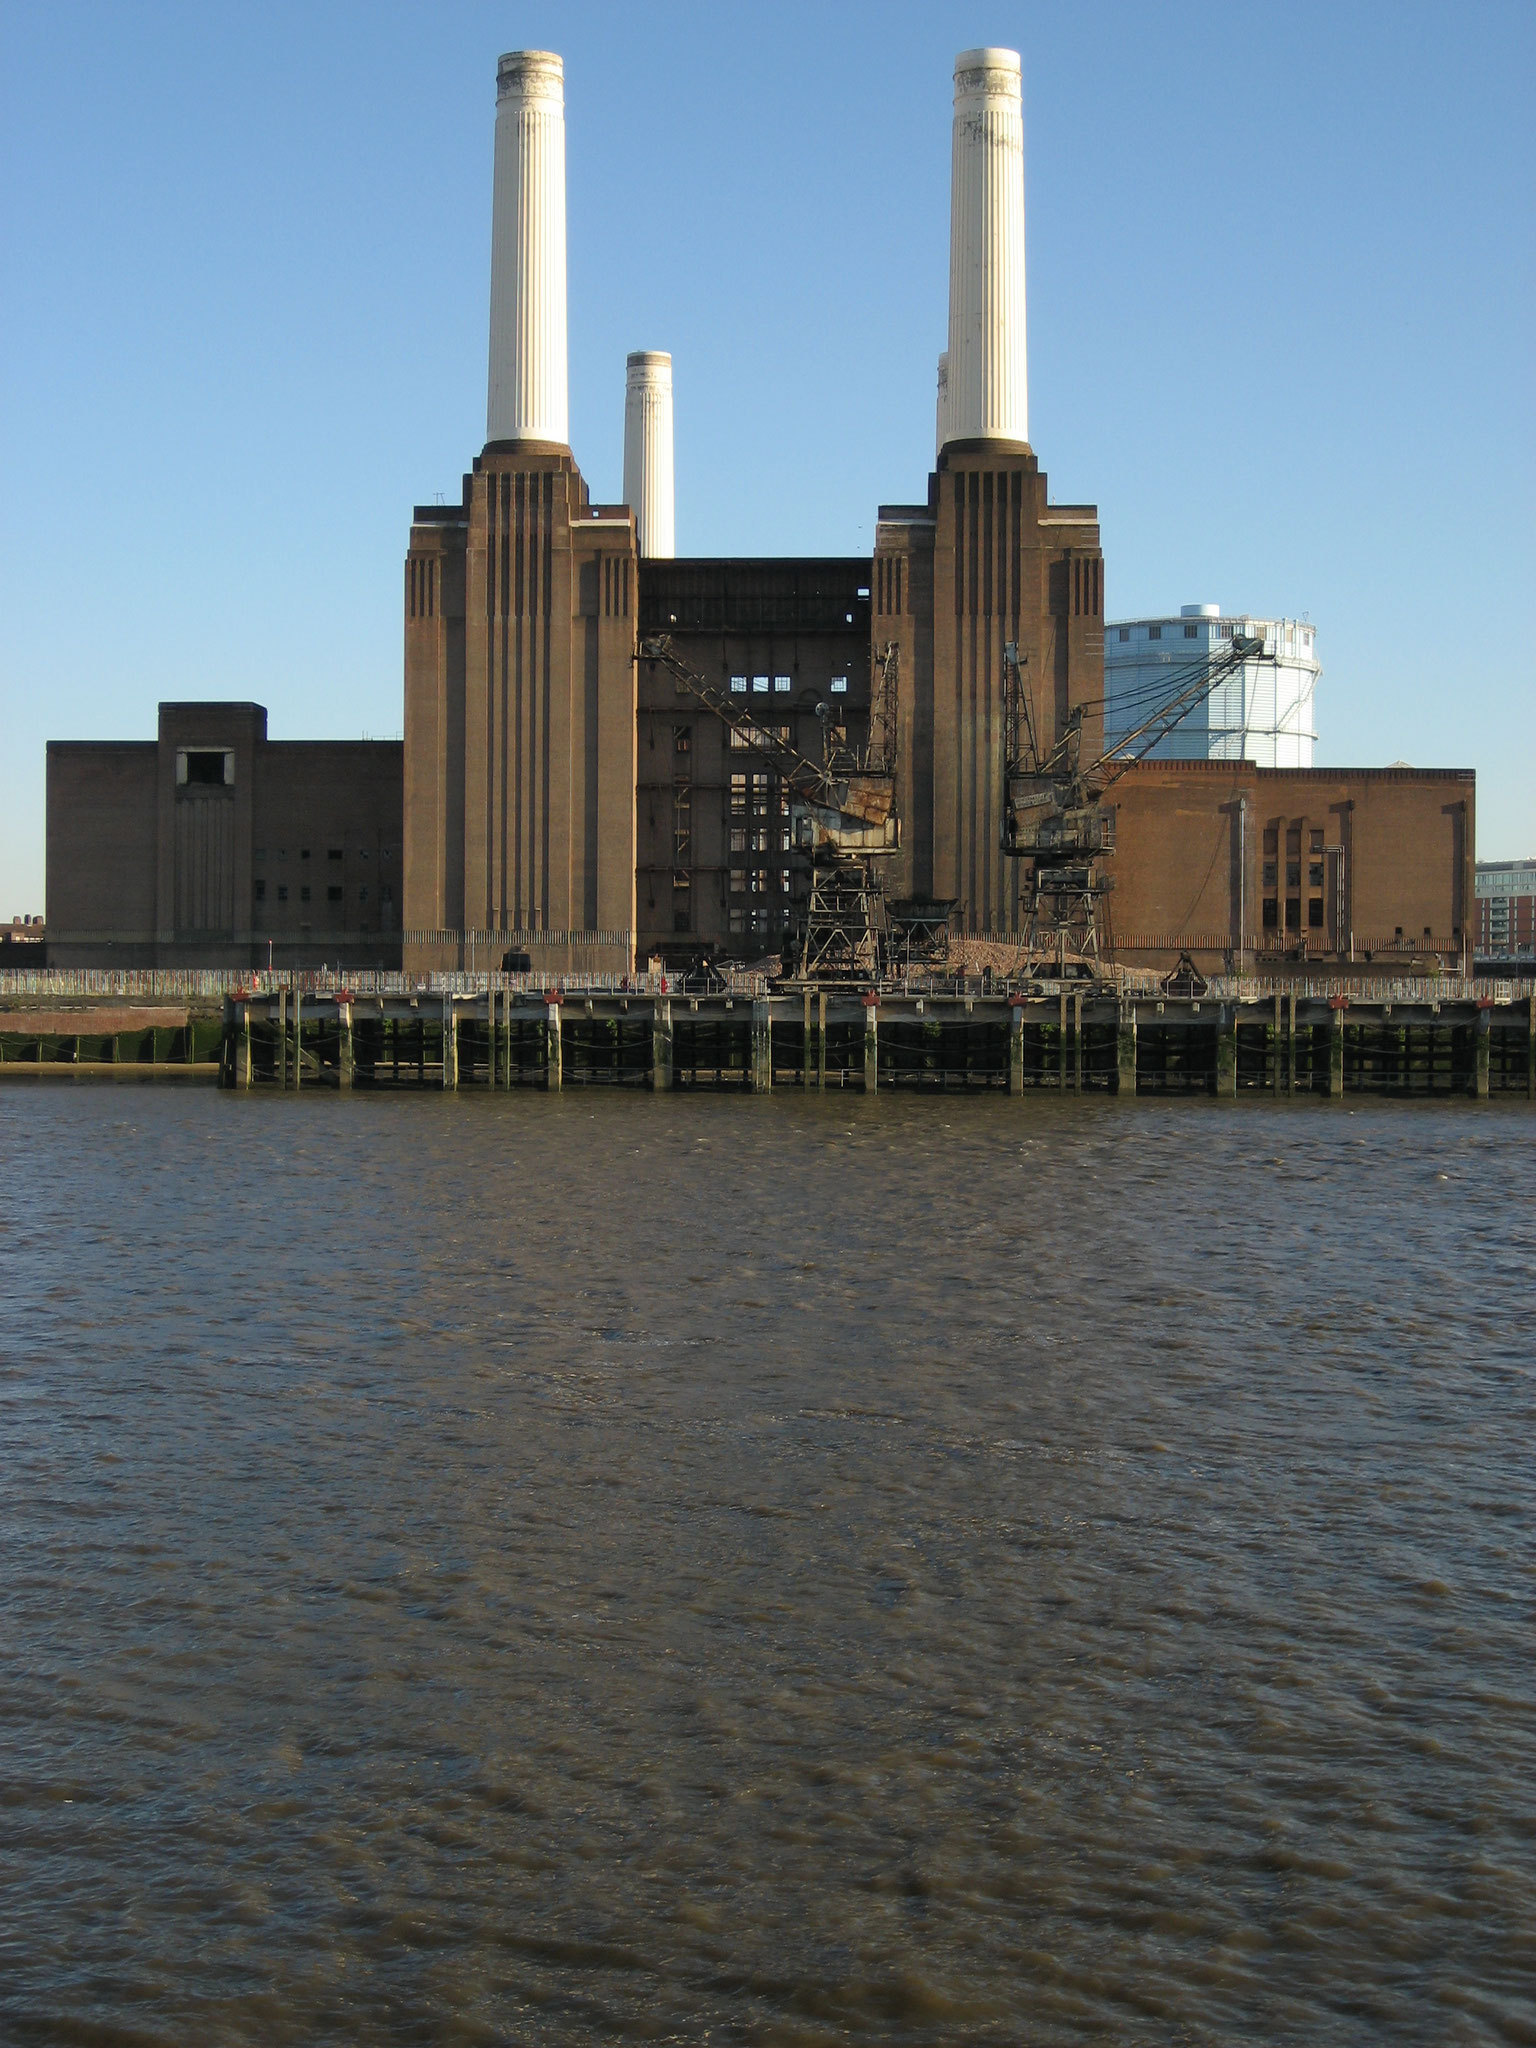 Battersea power station, London | All rights reserved|